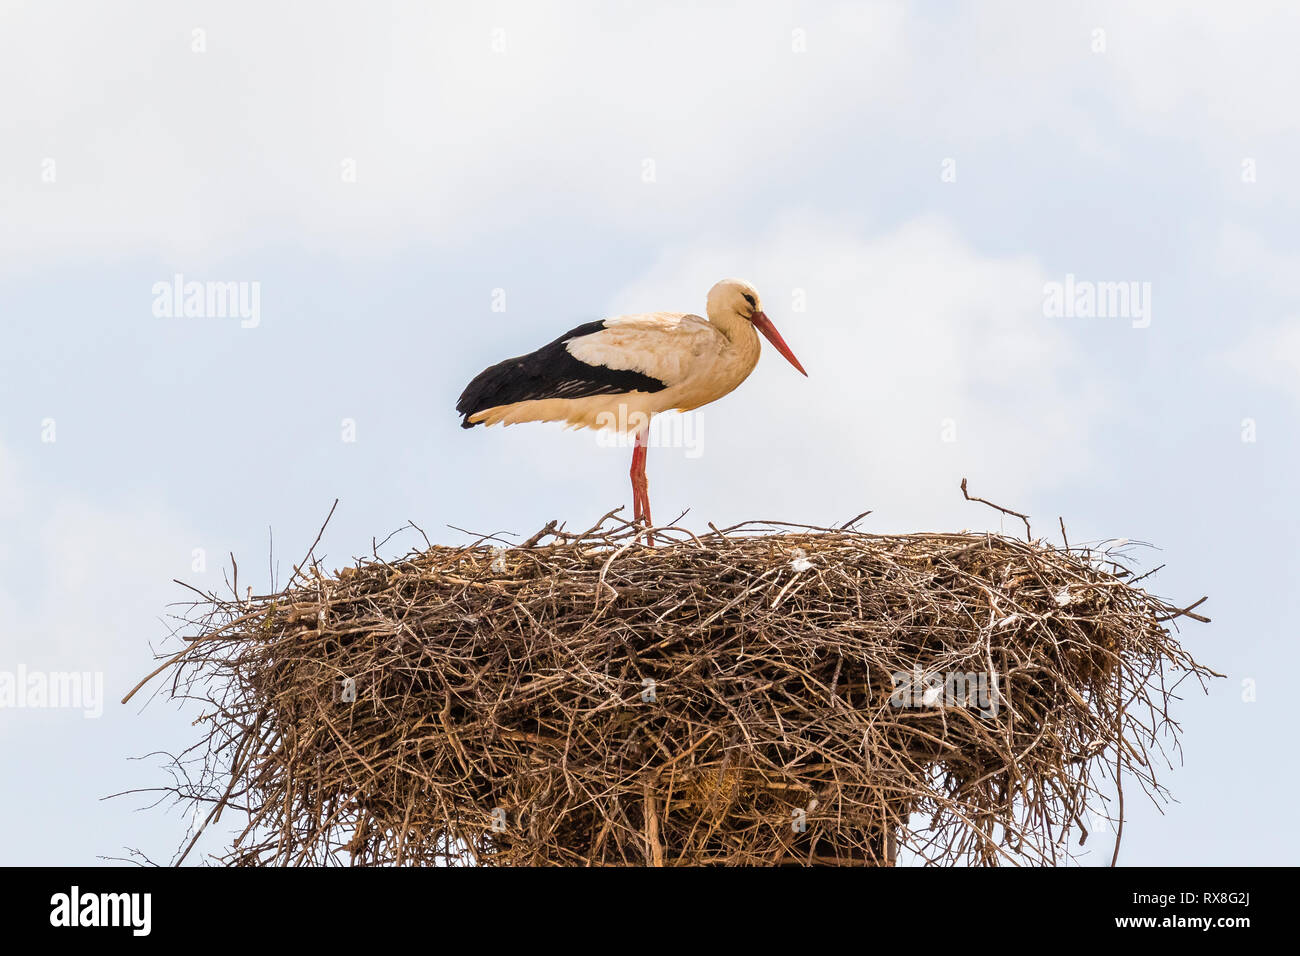 White stork in Silves, Portugal nest building at the end of winter - Stock Image